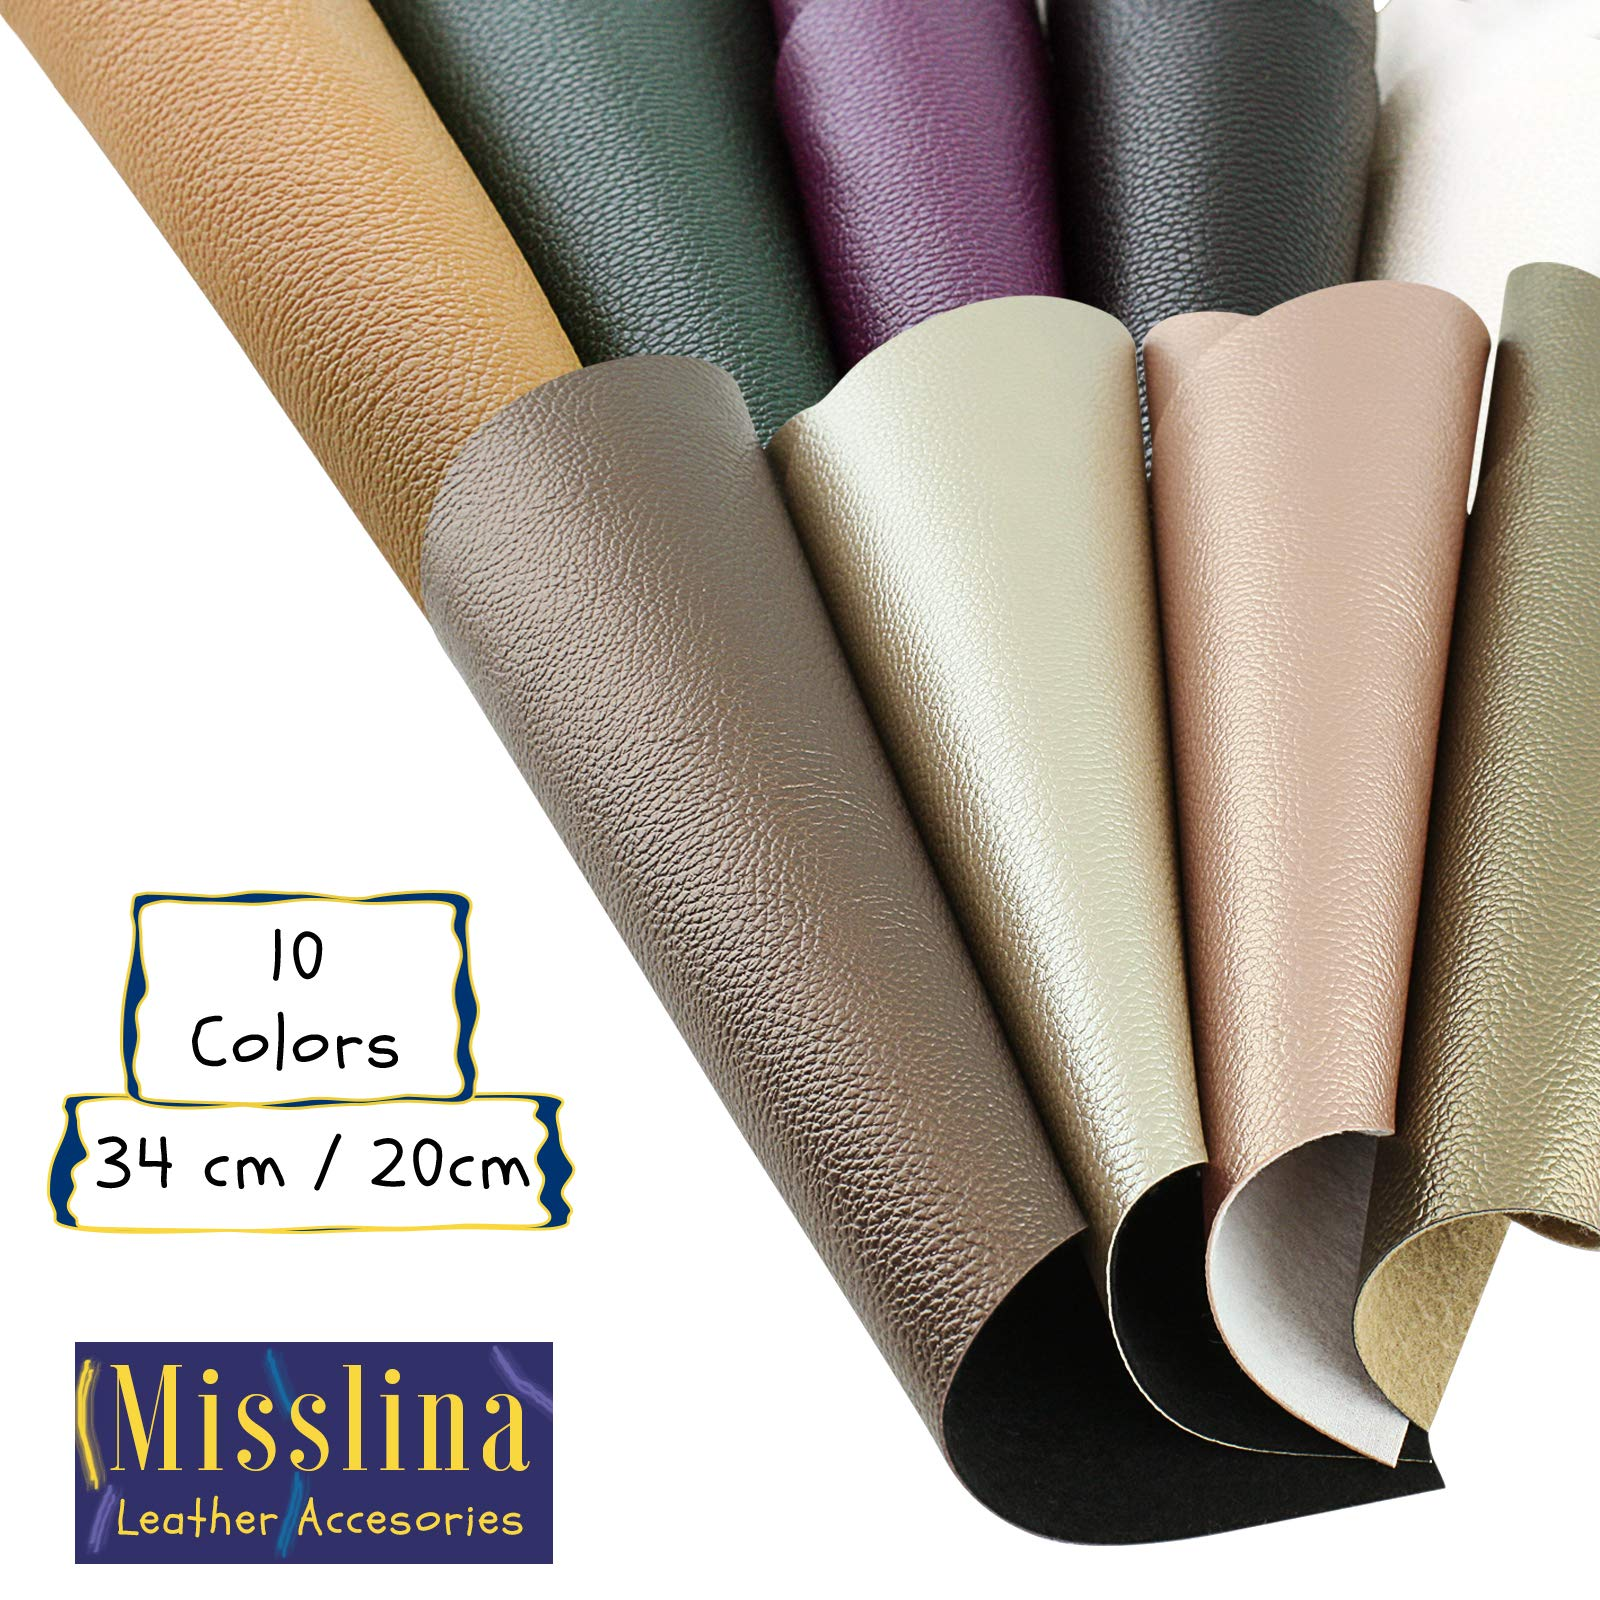 Faux Leather Sheets for Leathercraft Accesories with Cotton Fabric Back- 8'' x 13''(20 x 34 cm) Pack of 10 Faux Leather for Earring Making, Ribbon Bowls Crafts Making- 10 Colours of Faux Leather Sheets by MissLina Faux Leather Accesories (Image #4)